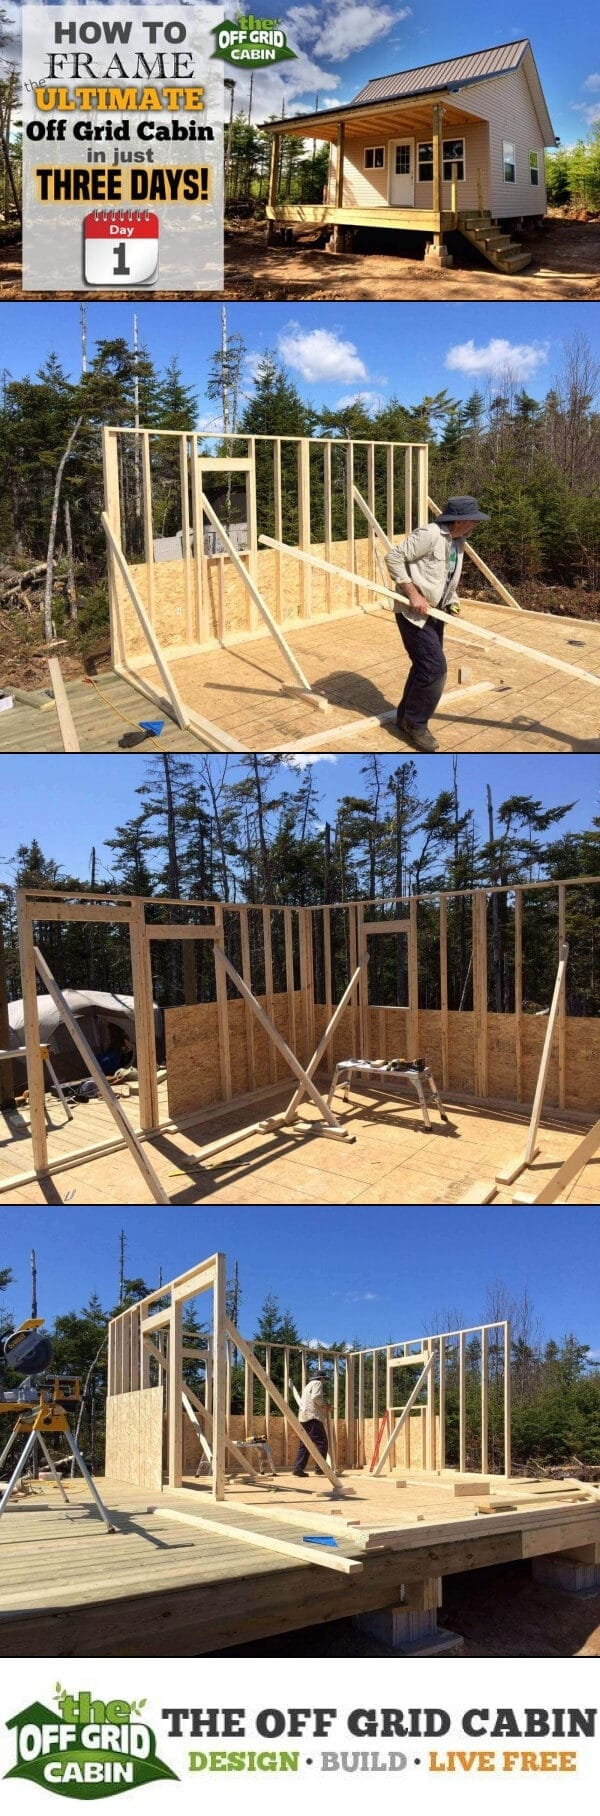 Framing the off grid cabin in 3 days day 1